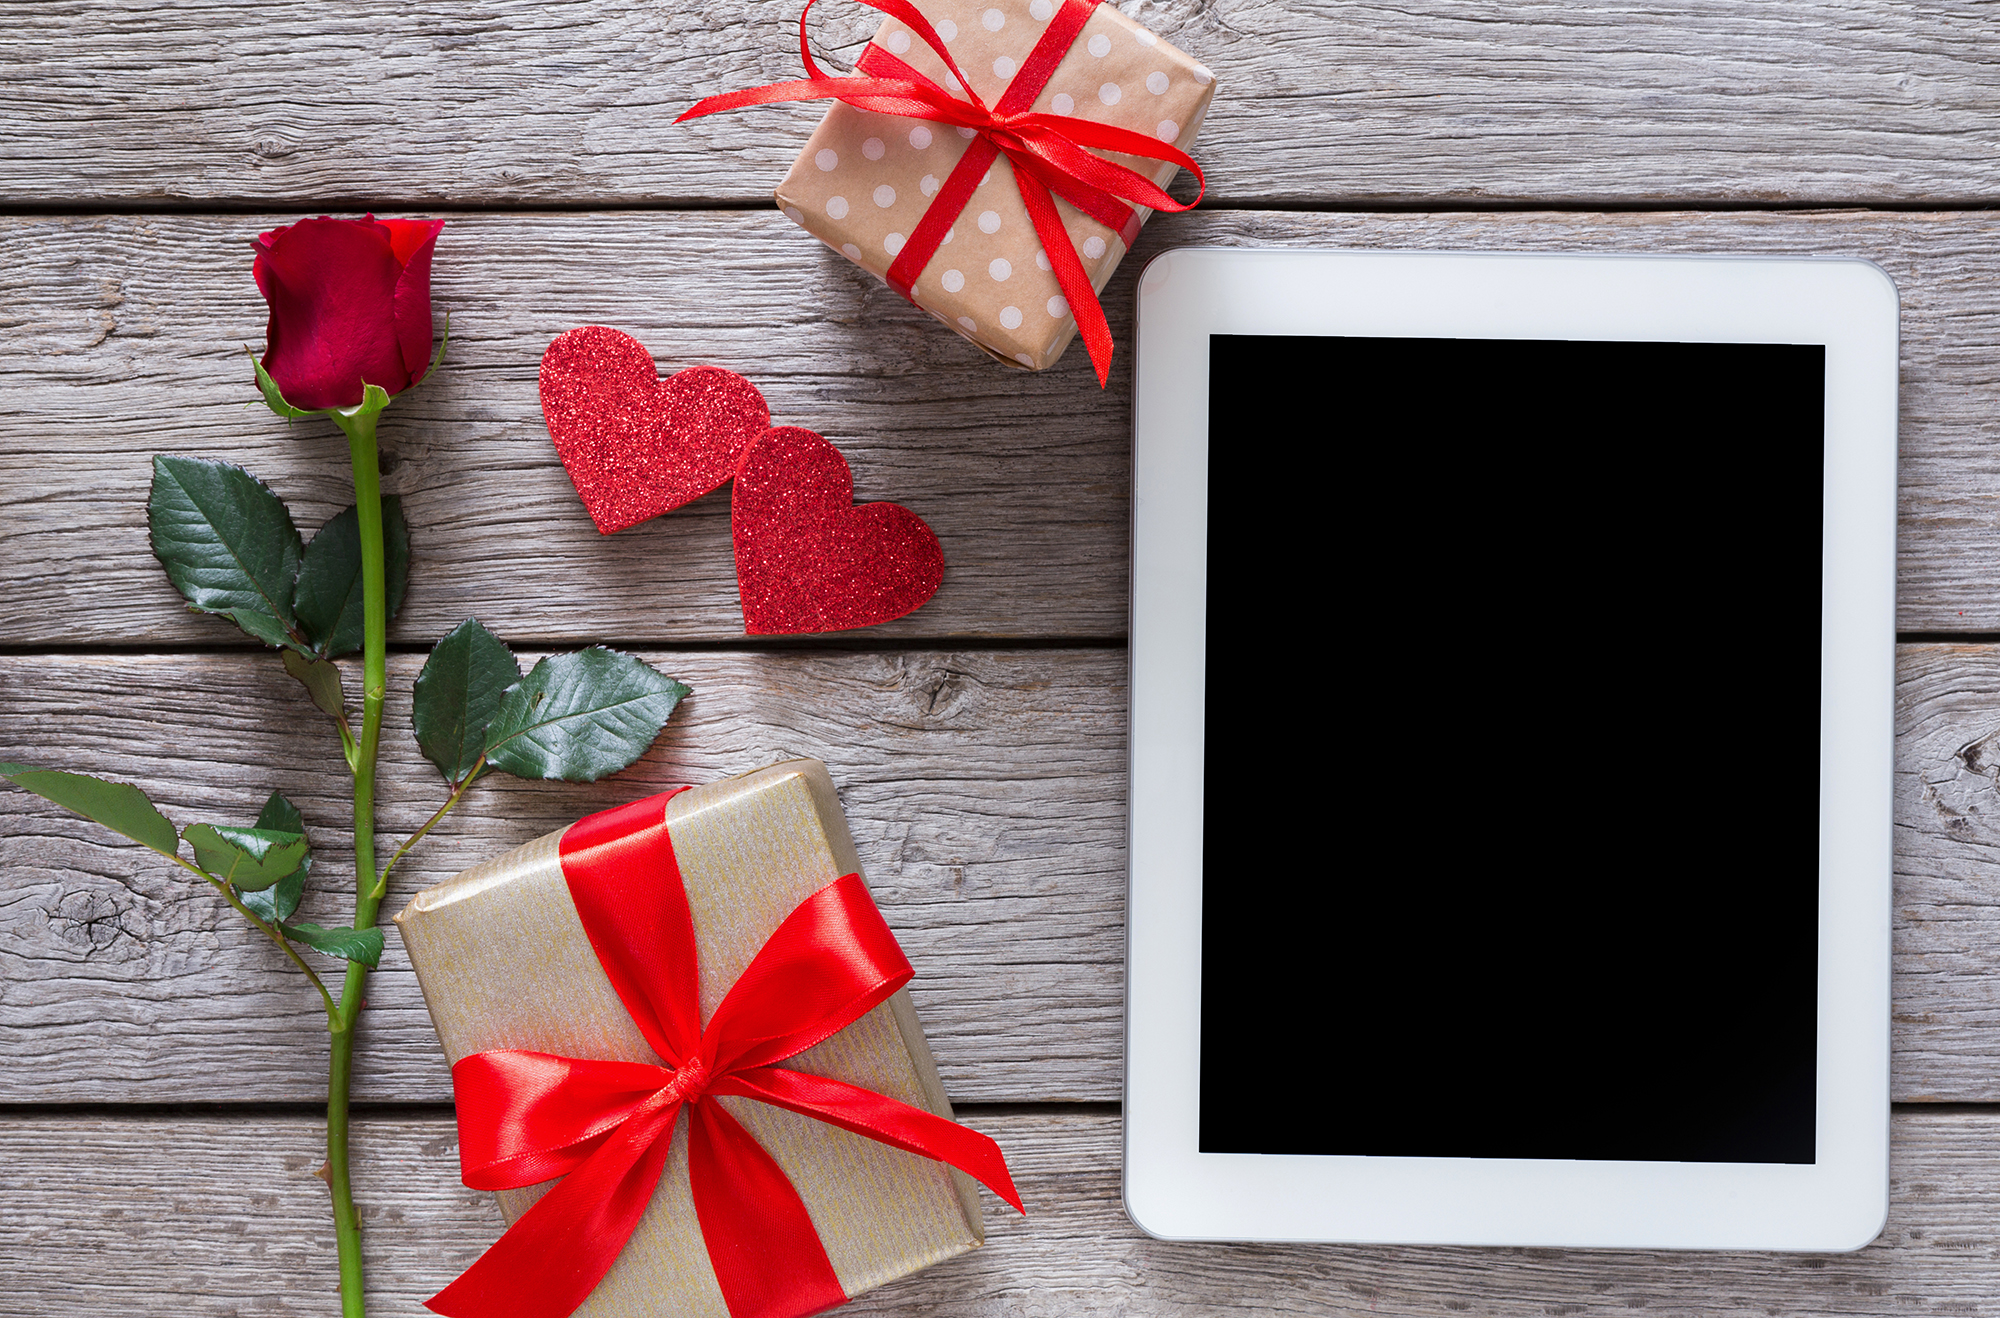 Online shopping holiday background. Tablet screen, rose flower and paper hearts on rustic wood